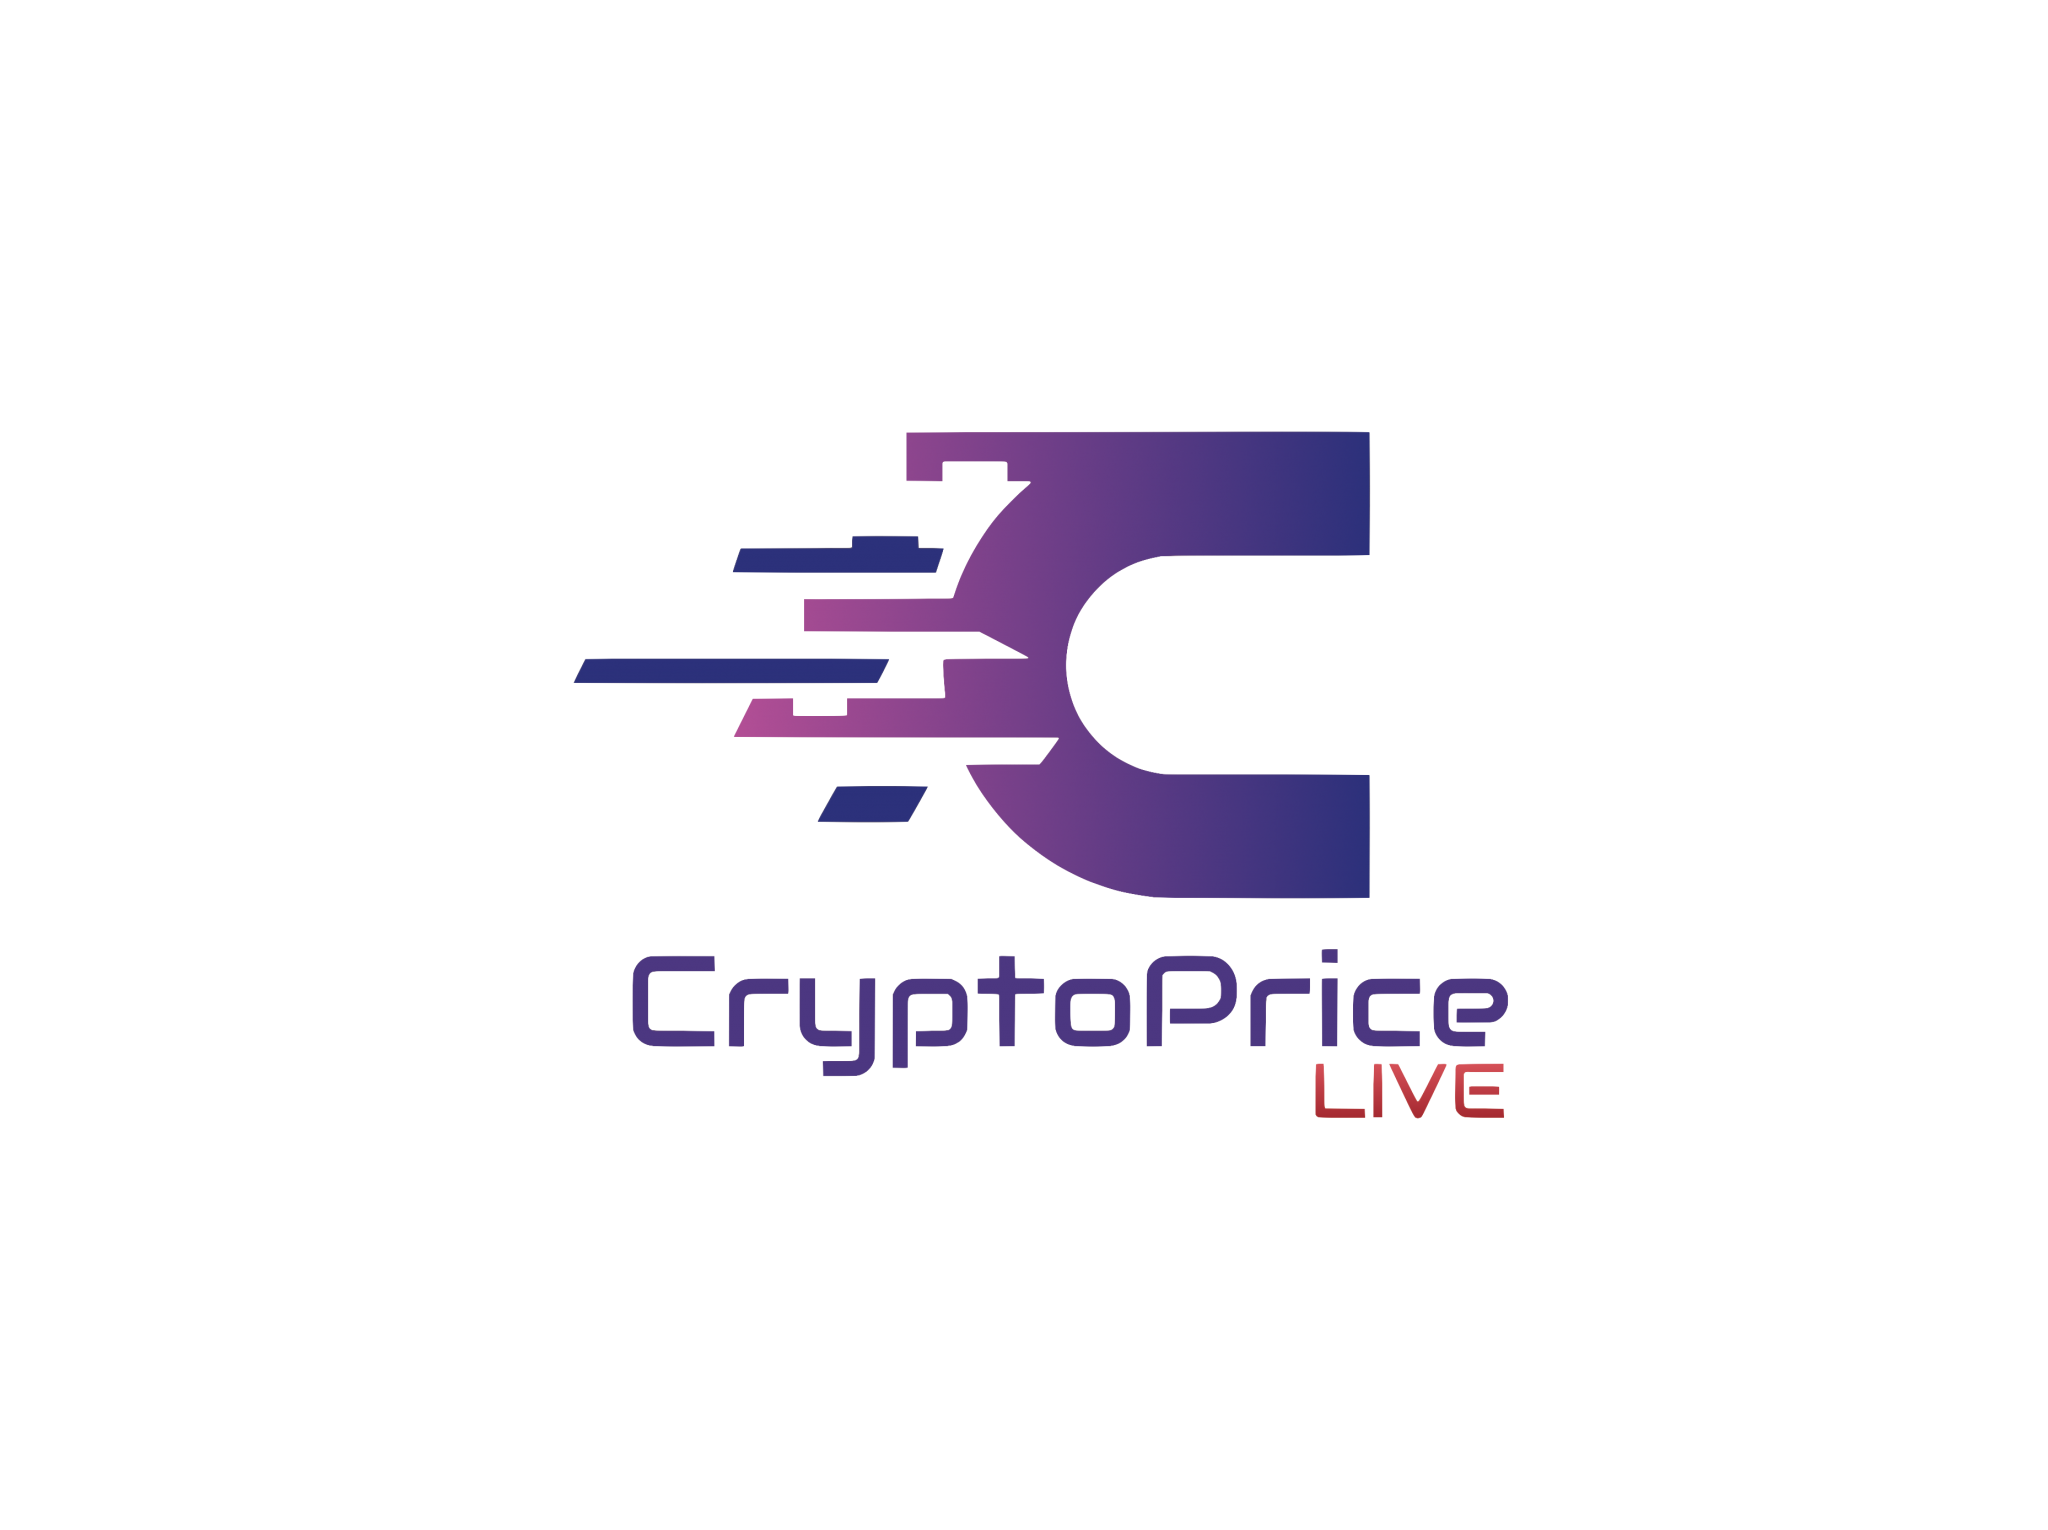 Crypto Price Live - cover